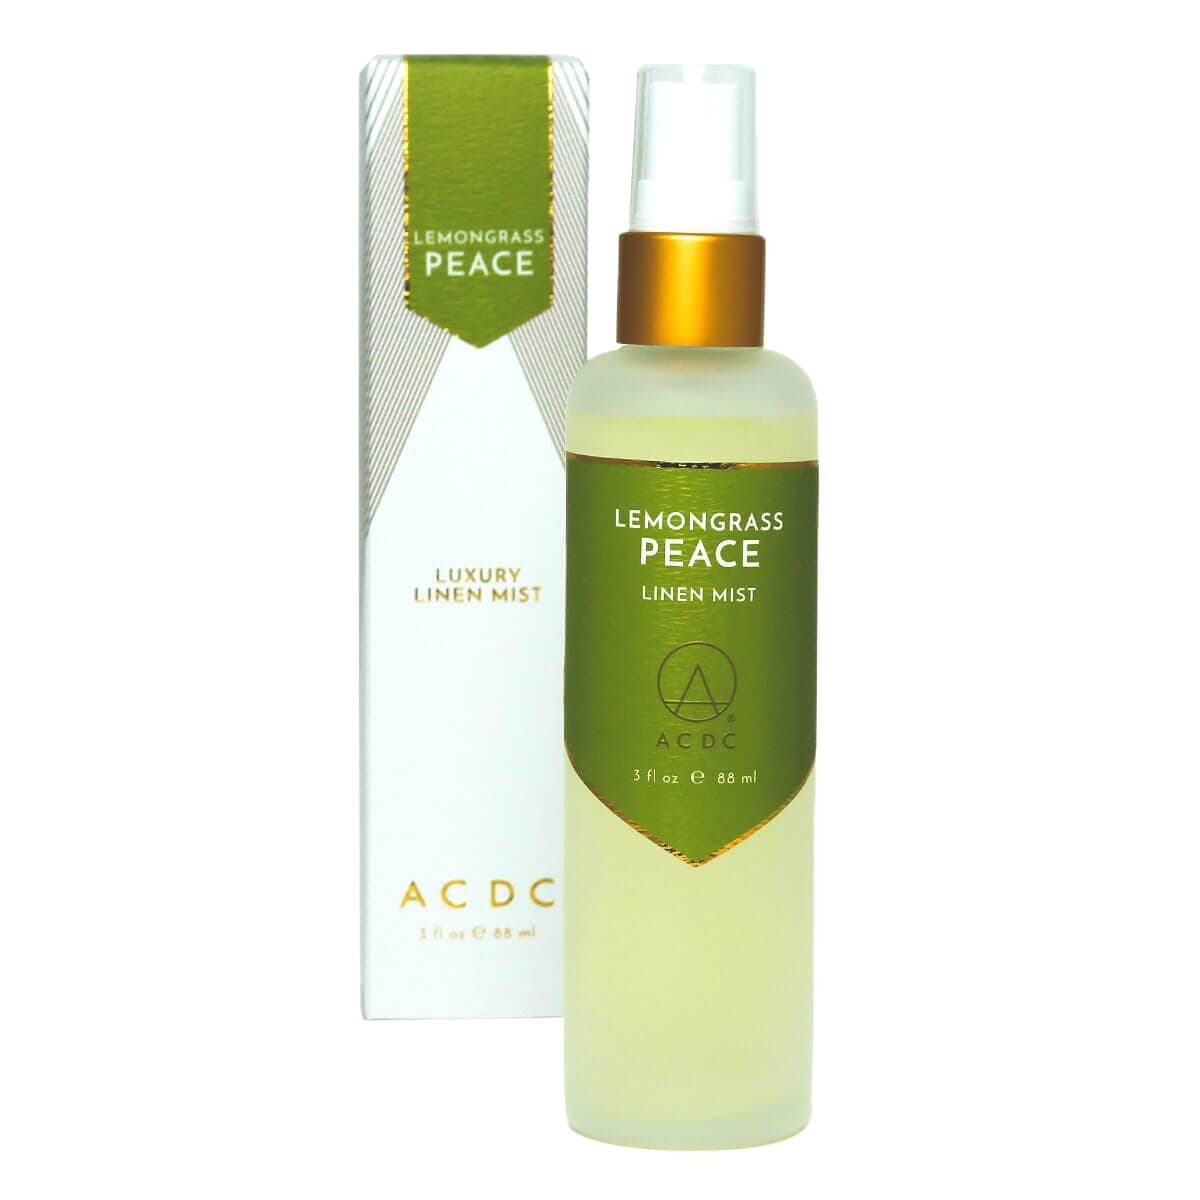 ACDC Candle Co Candles & Diffusers Lemongrass Peace Luxury Linen Mist